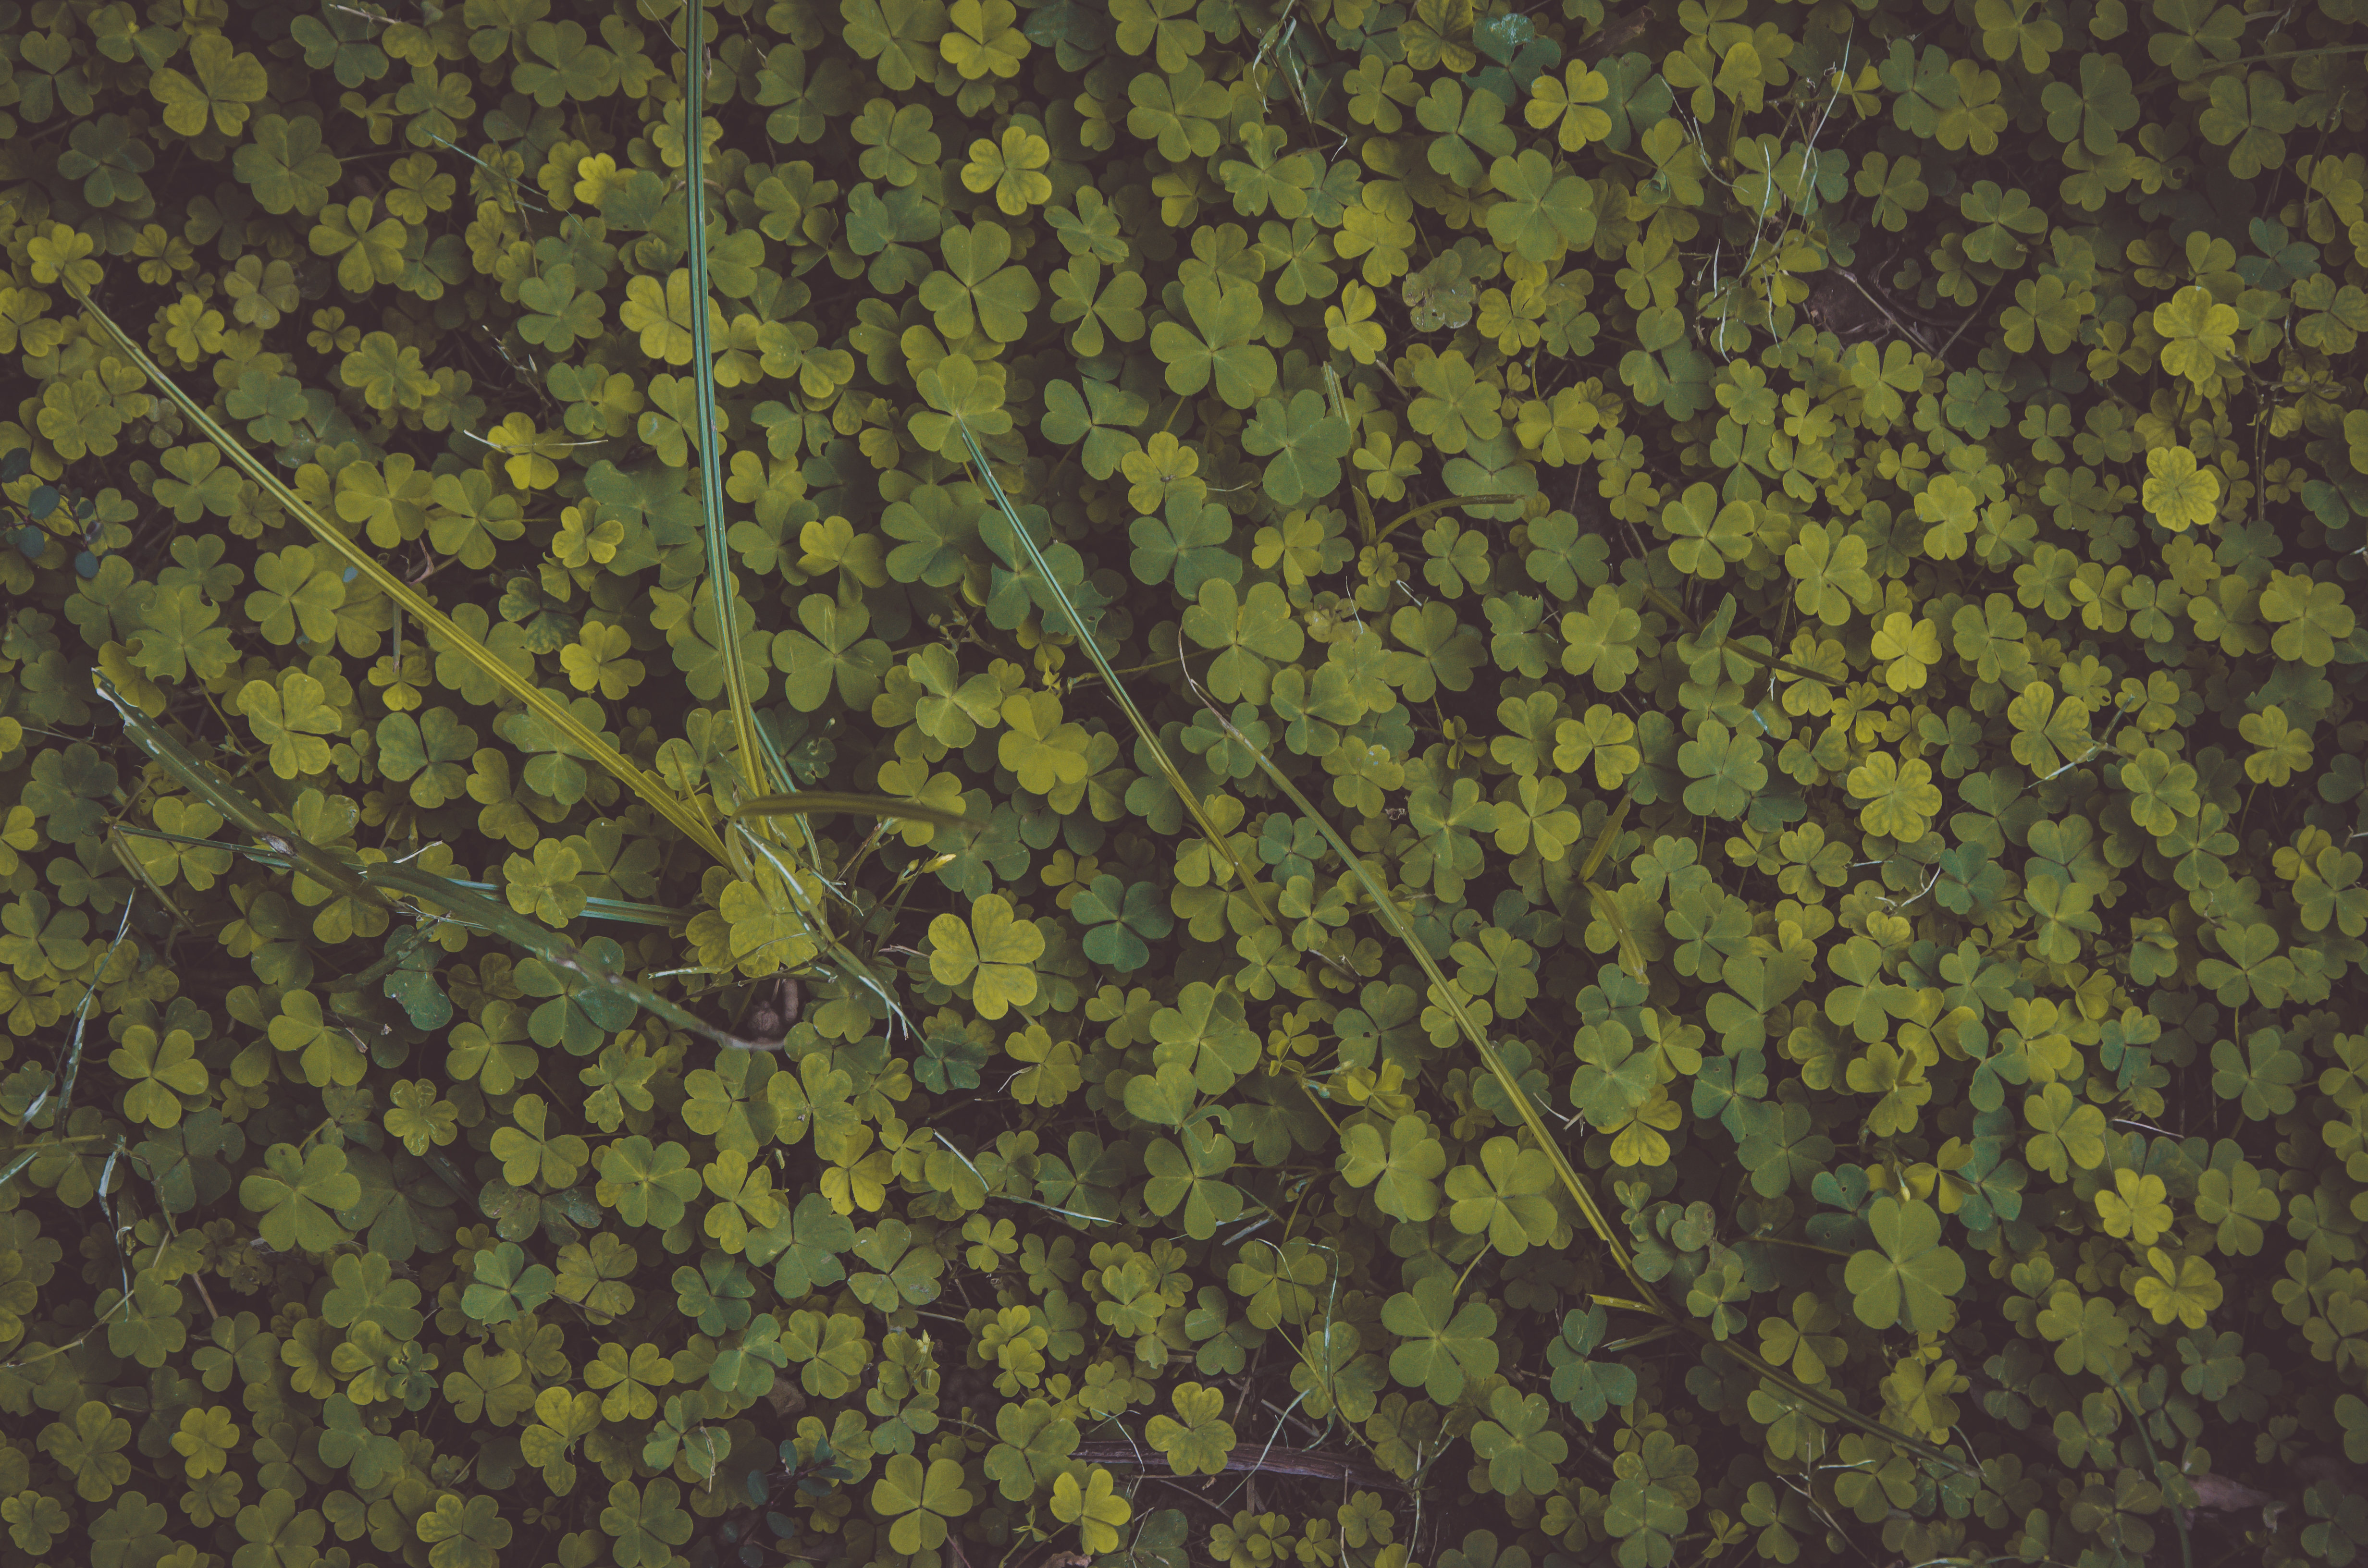 Photo of Clovers